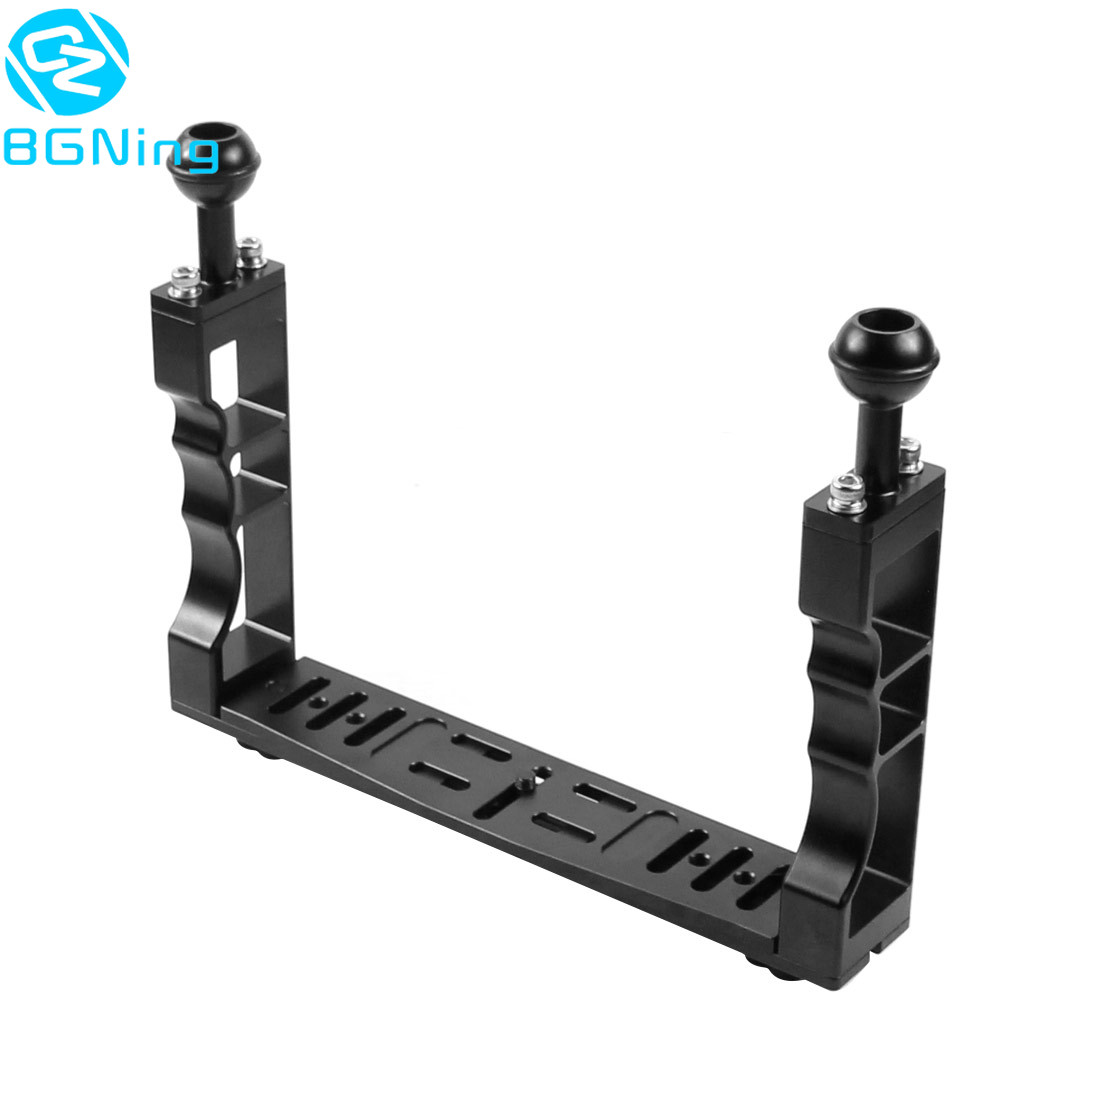 New Handle Aluminium Alloy Tray Stabilizer Rig For Underwater Camera Housing Case Diving Tray Mount For GoPro DSLR Smartphones